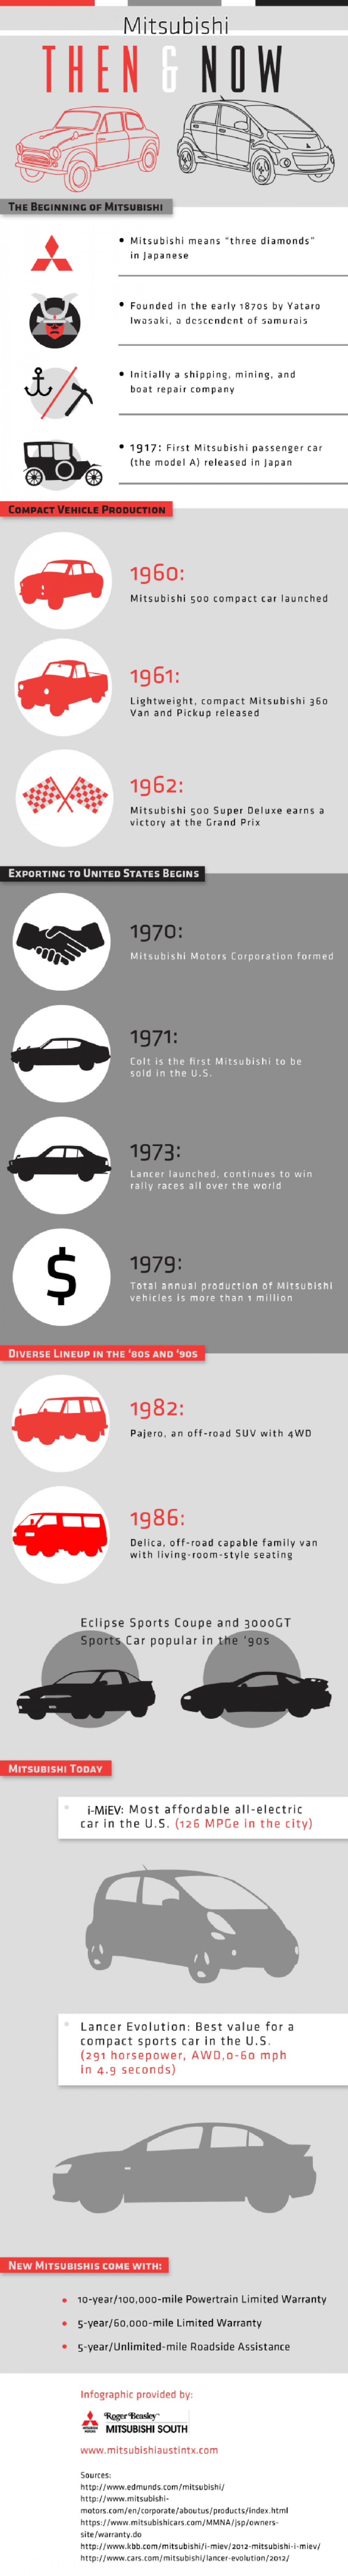 Mitsubishi Then & Now Infographic